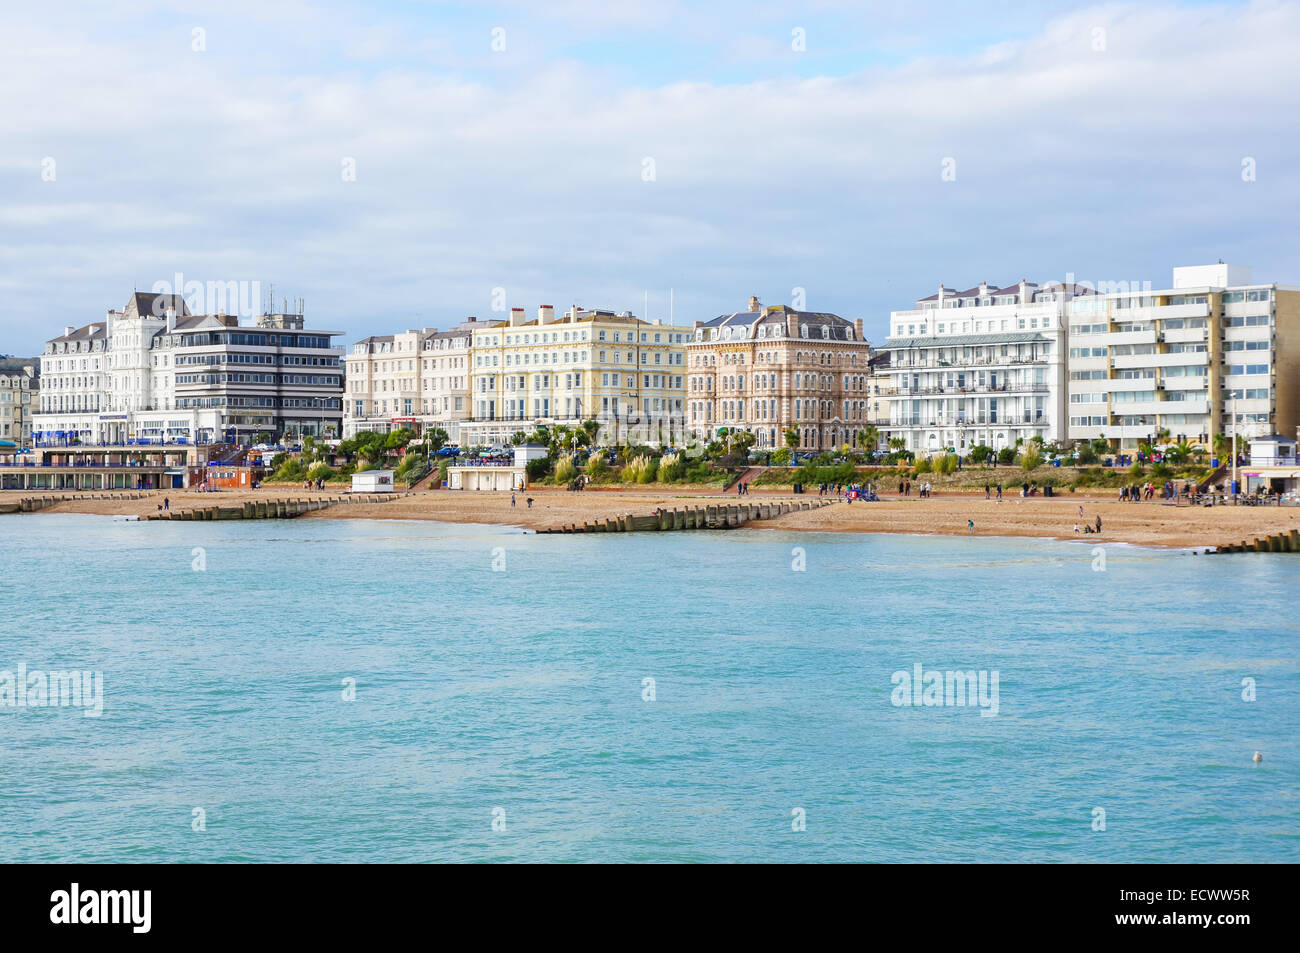 Eastbourne beach and seafront as seen from the pier, Eastbourne East Sussex England United Kingdom UK Stock Photo